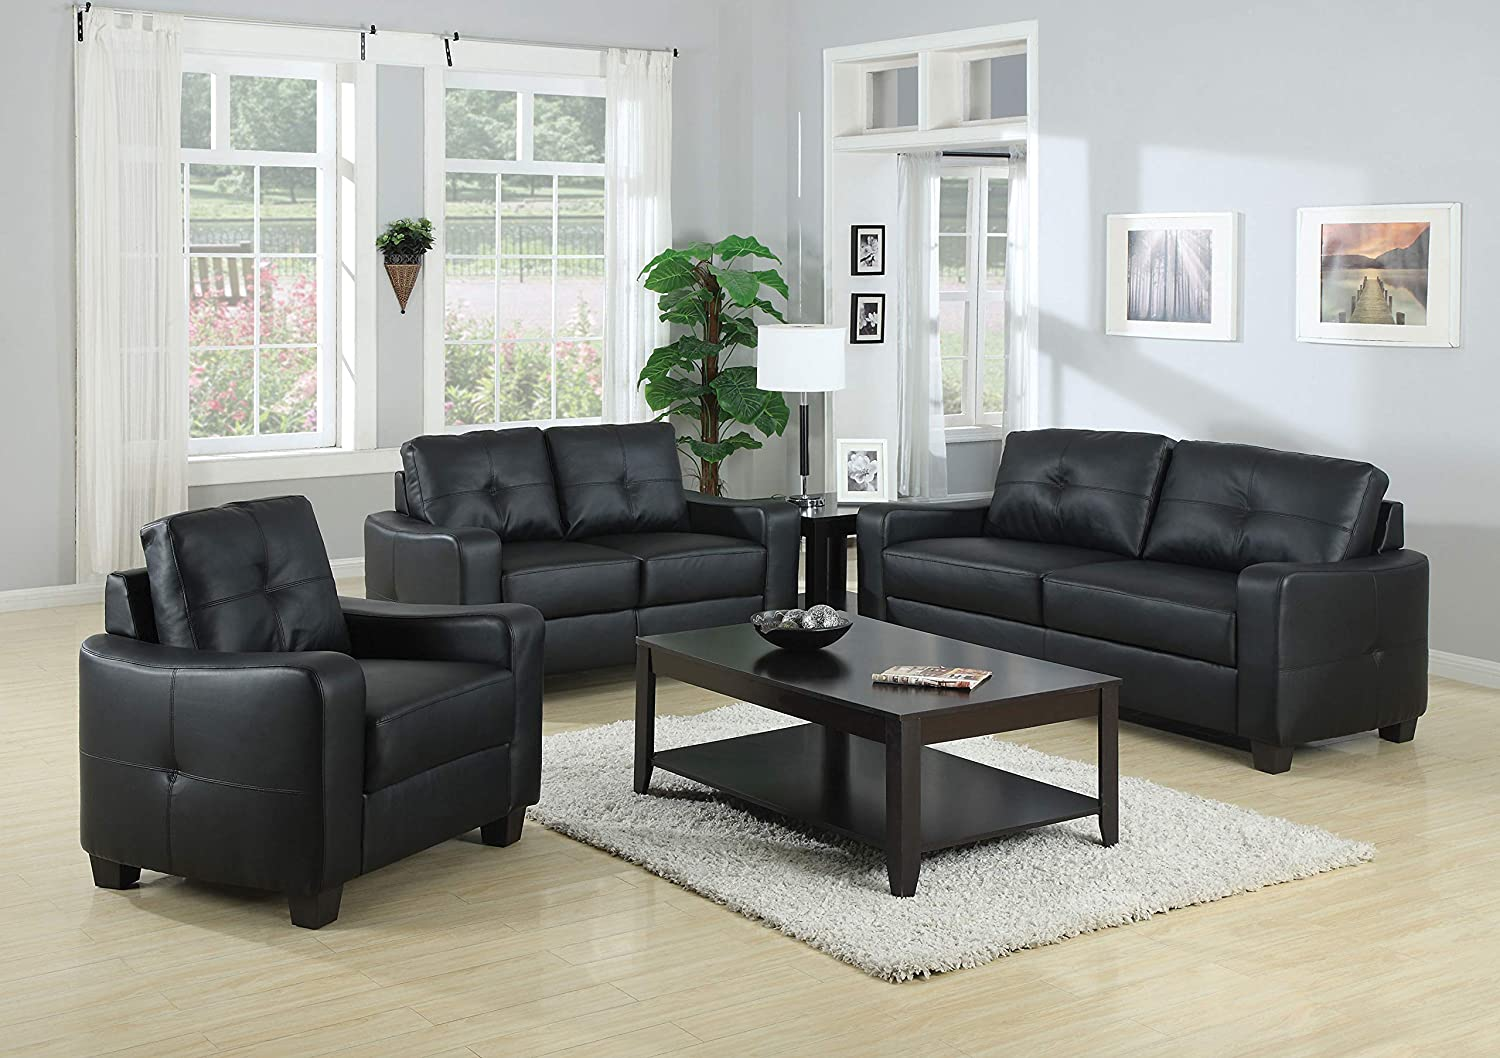 Amazon.com: Coaster Home Furnishings 3-Pc Sofa Set in Brown ...